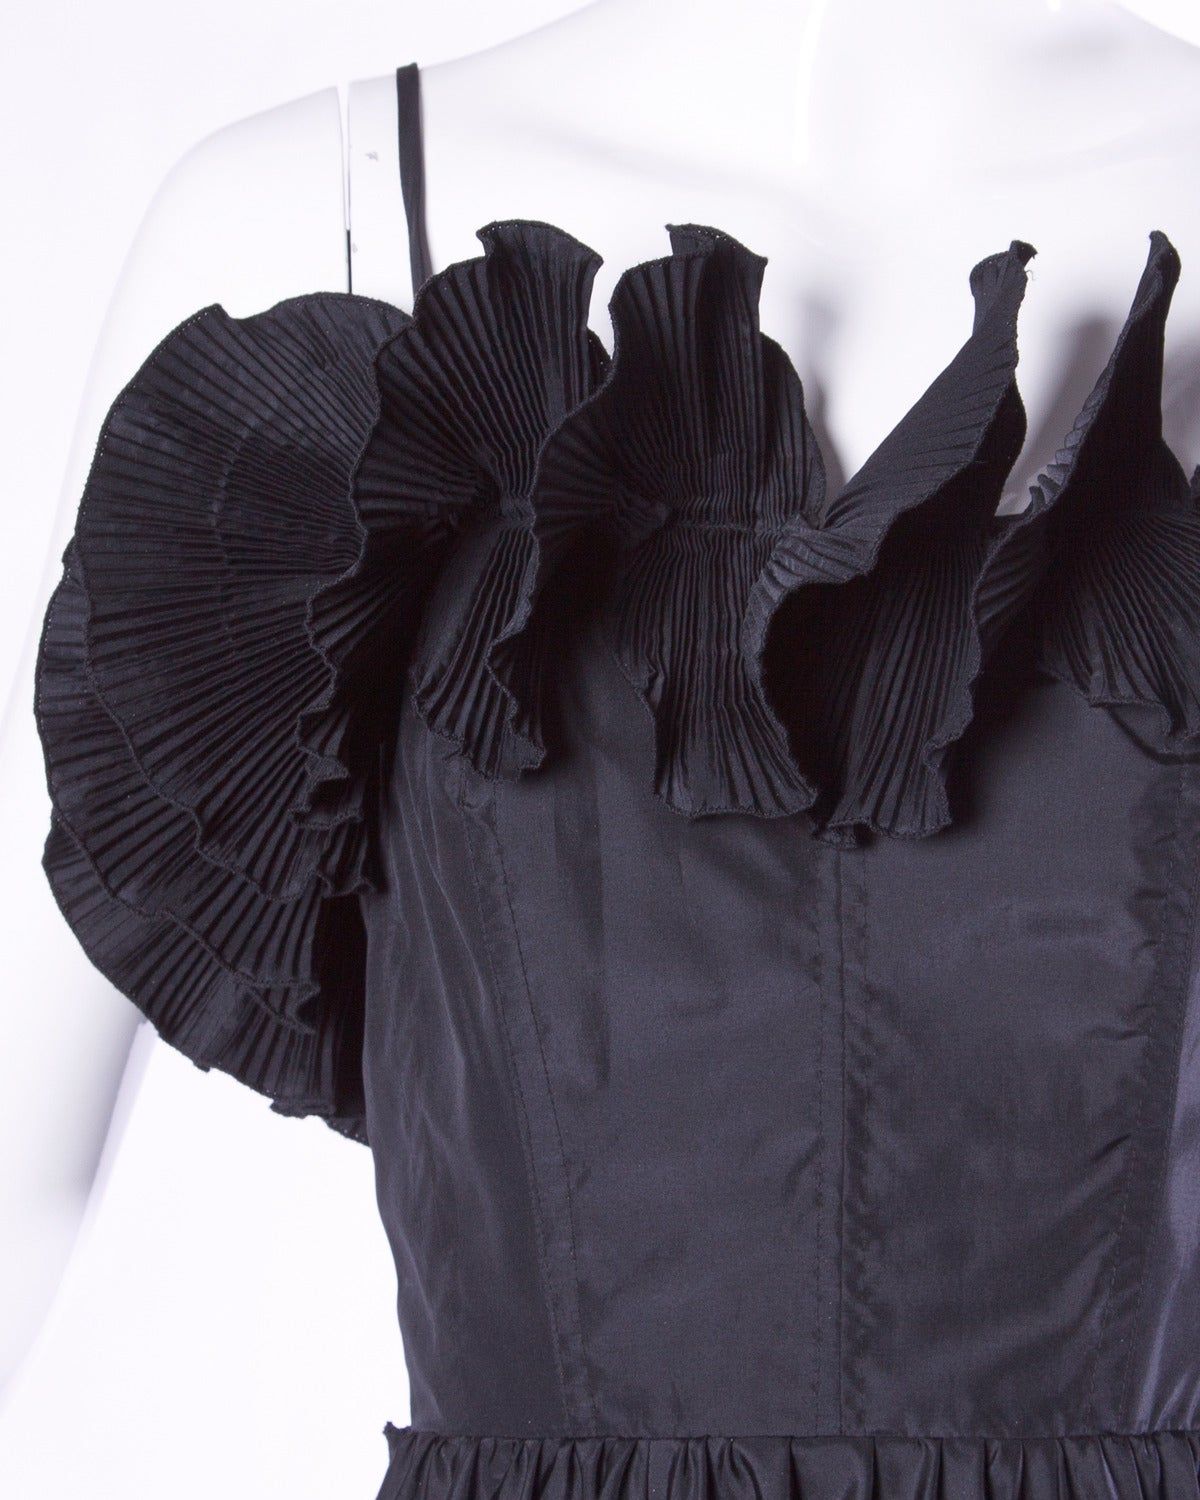 Black Saks Fifth Avenue Vintage Sculptural Origami Pleated Formal Dress For Sale